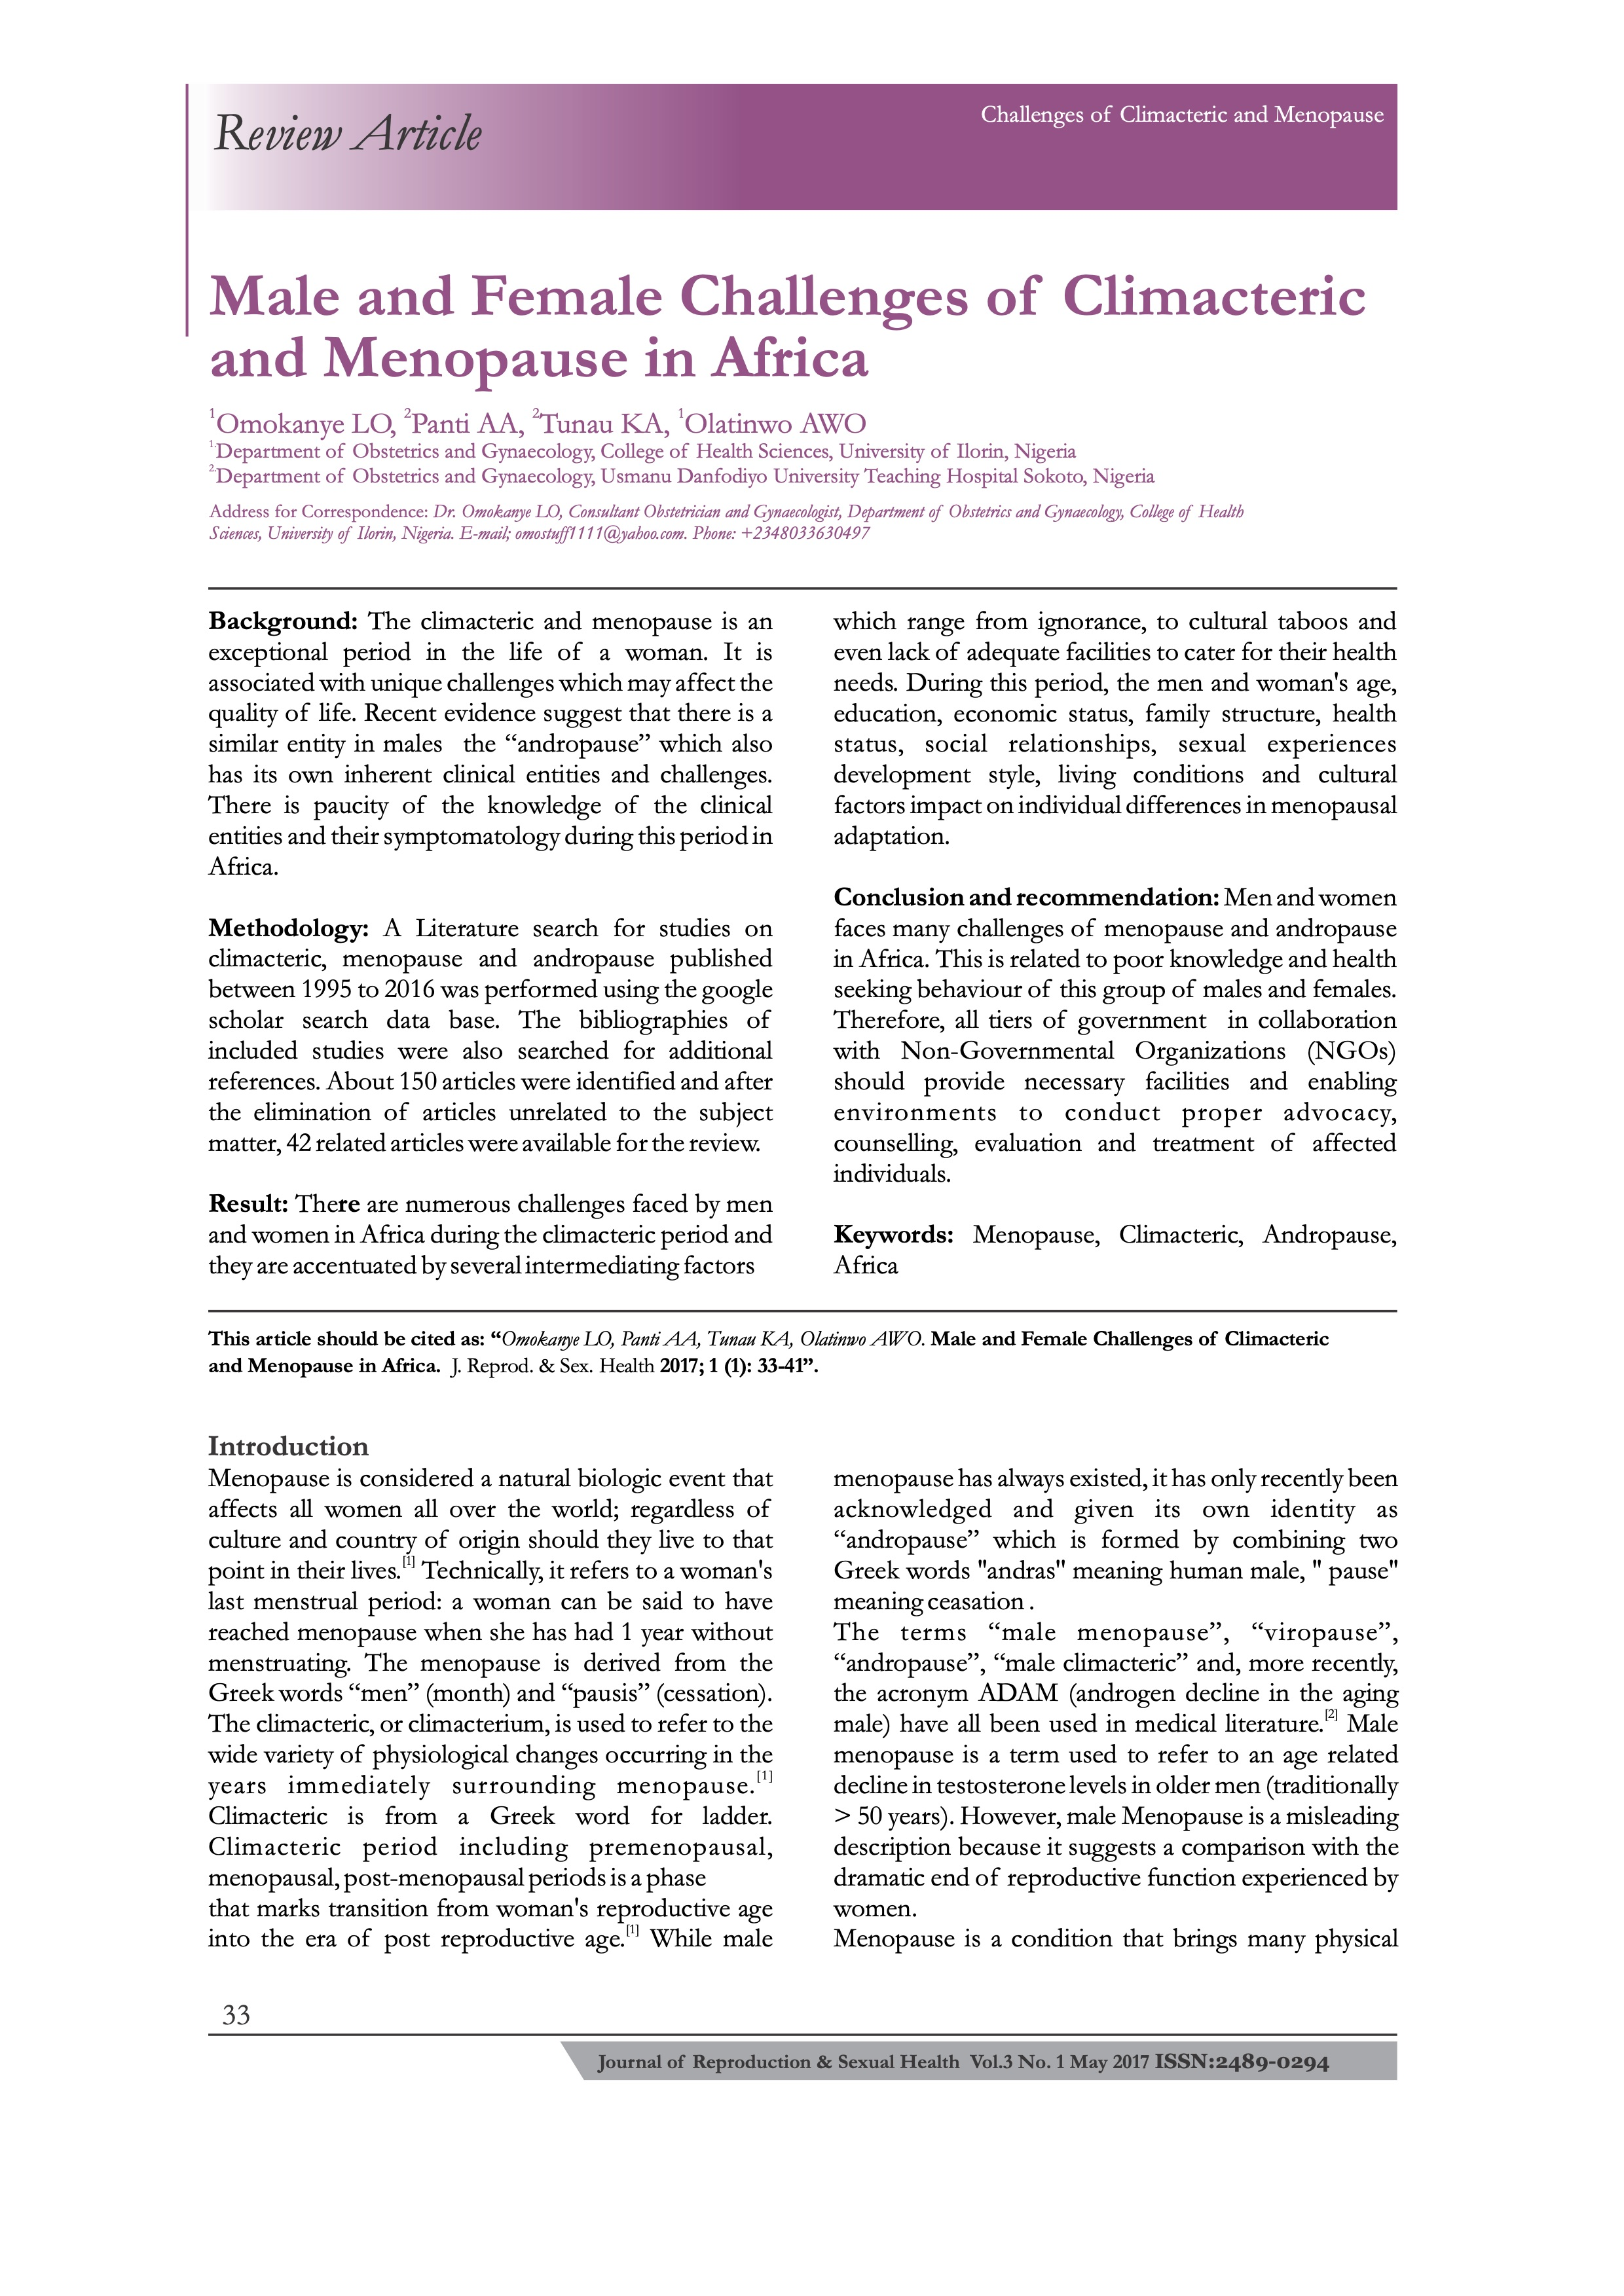 Male and Female Challenges of Climacteric and Menopause in Africa